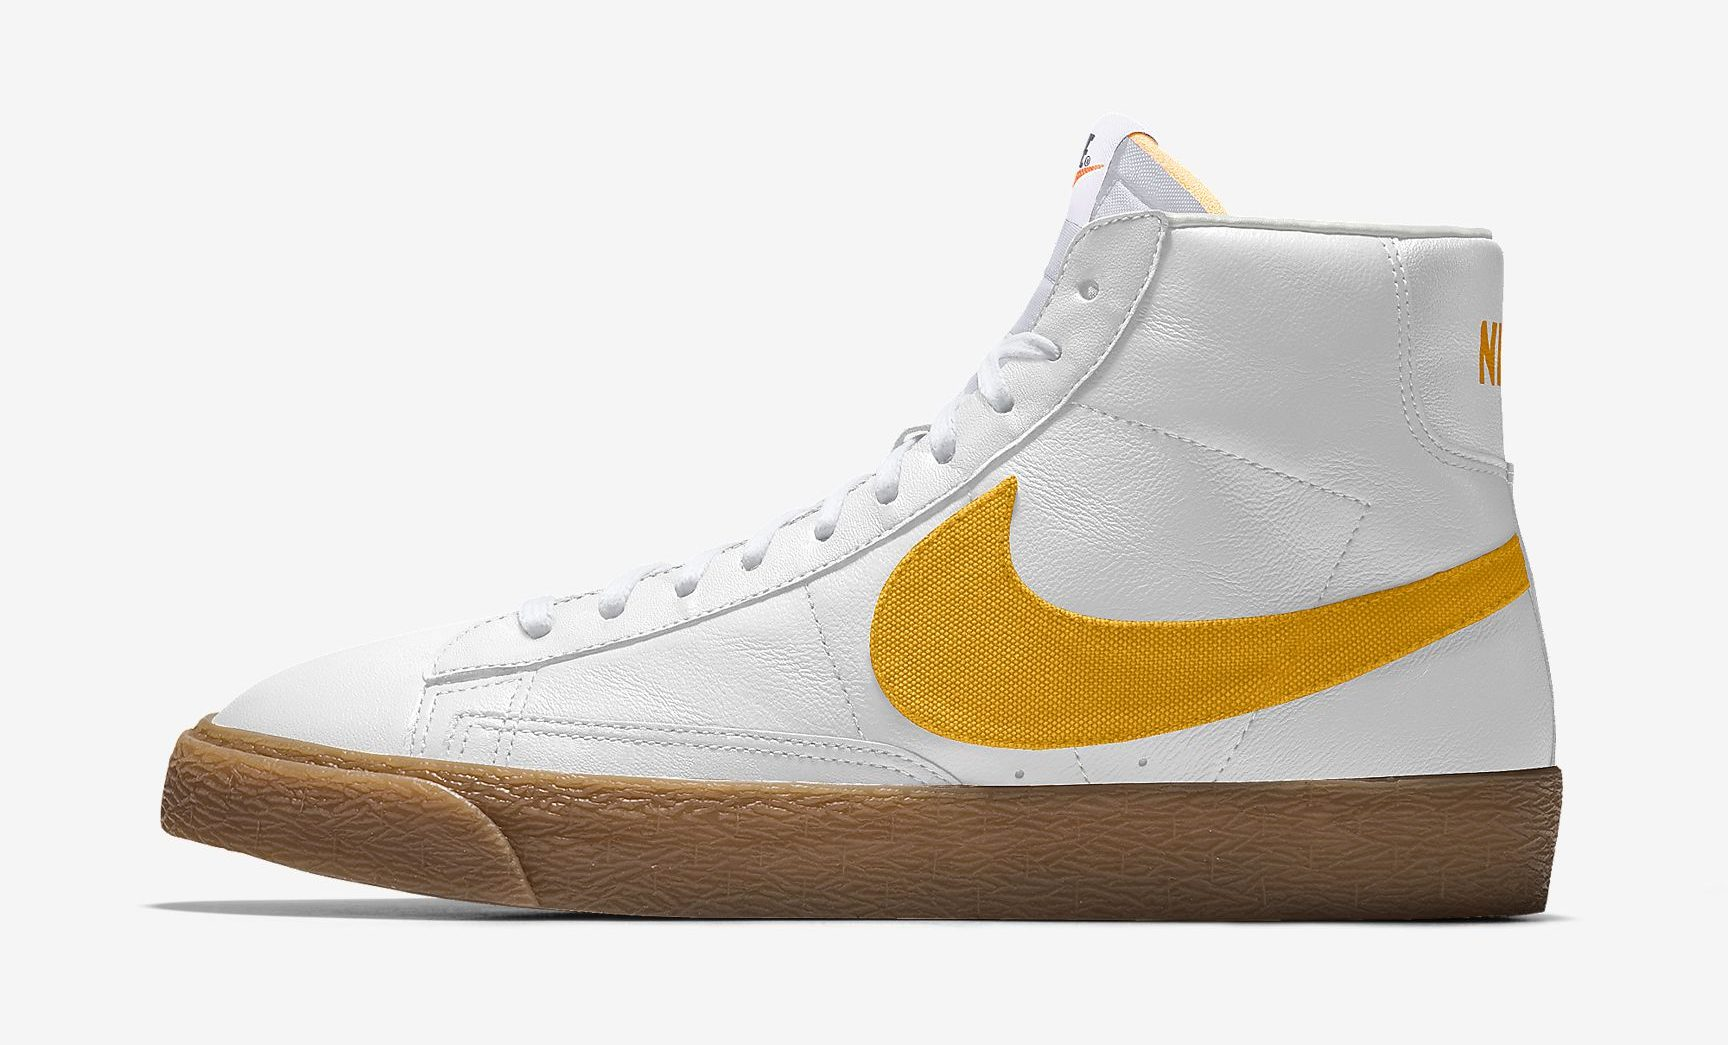 Nike Adds Customization Options To The